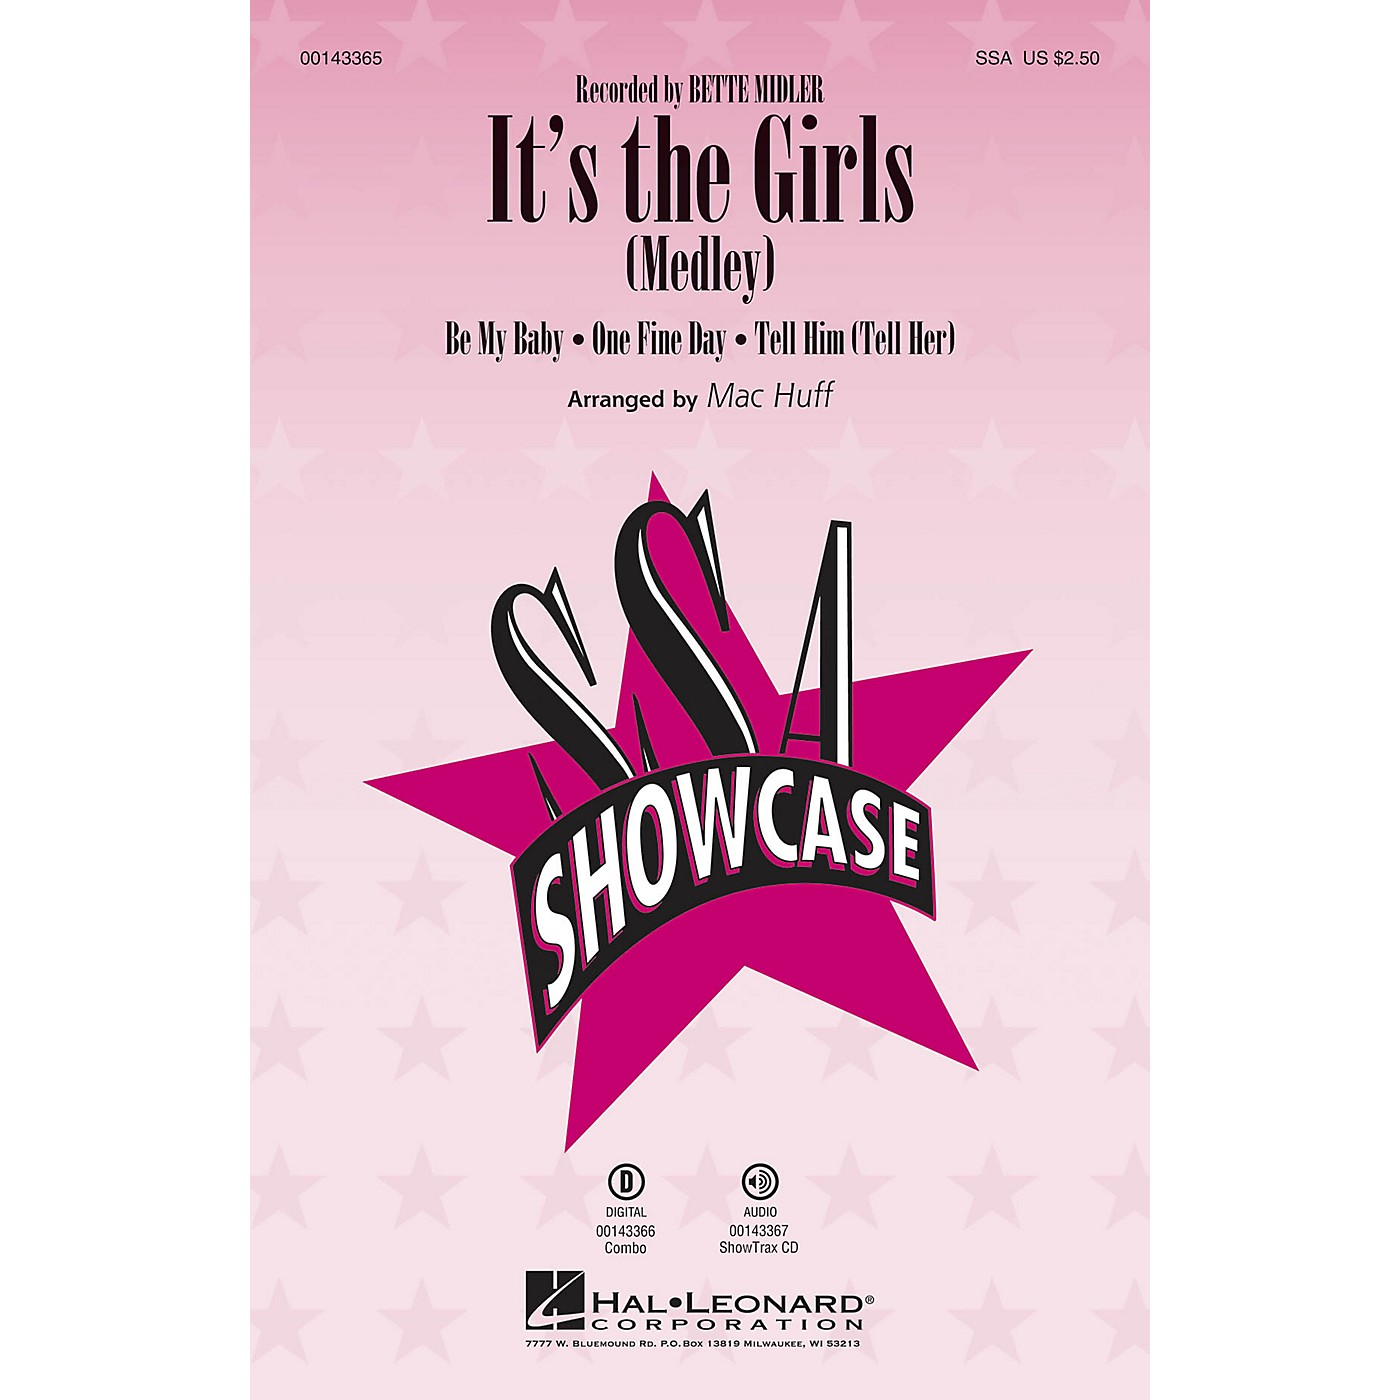 Hal Leonard It's the Girls (Medley) ShowTrax CD by Bette Midler Arranged by Mac Huff thumbnail